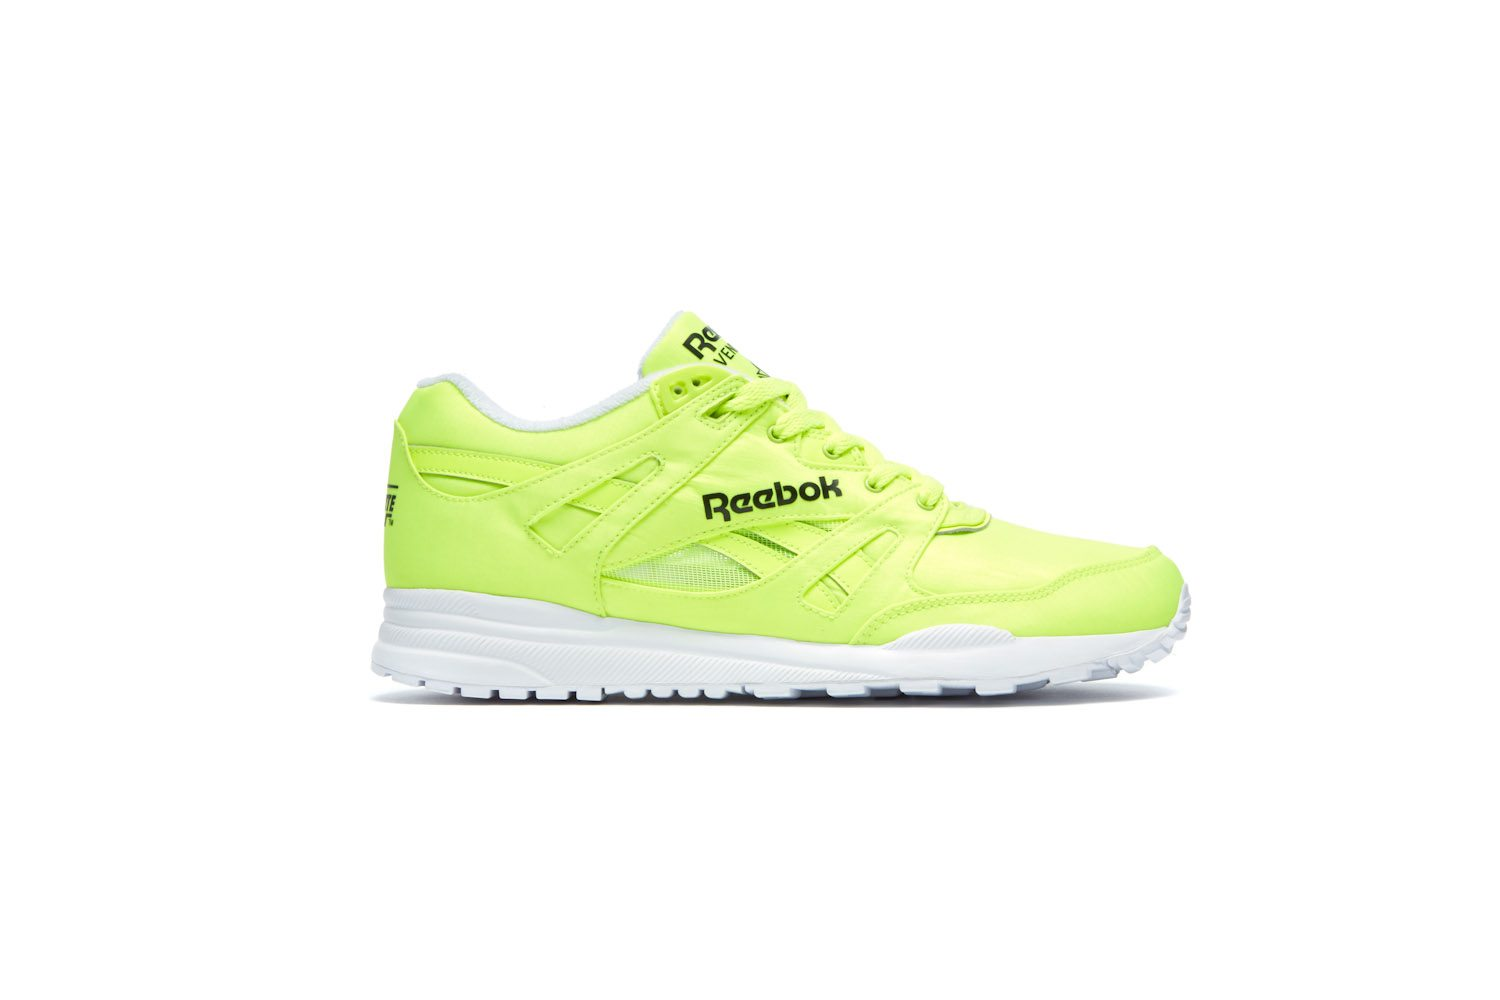 Reebok Classic Ventilator Day Glo Pack 4